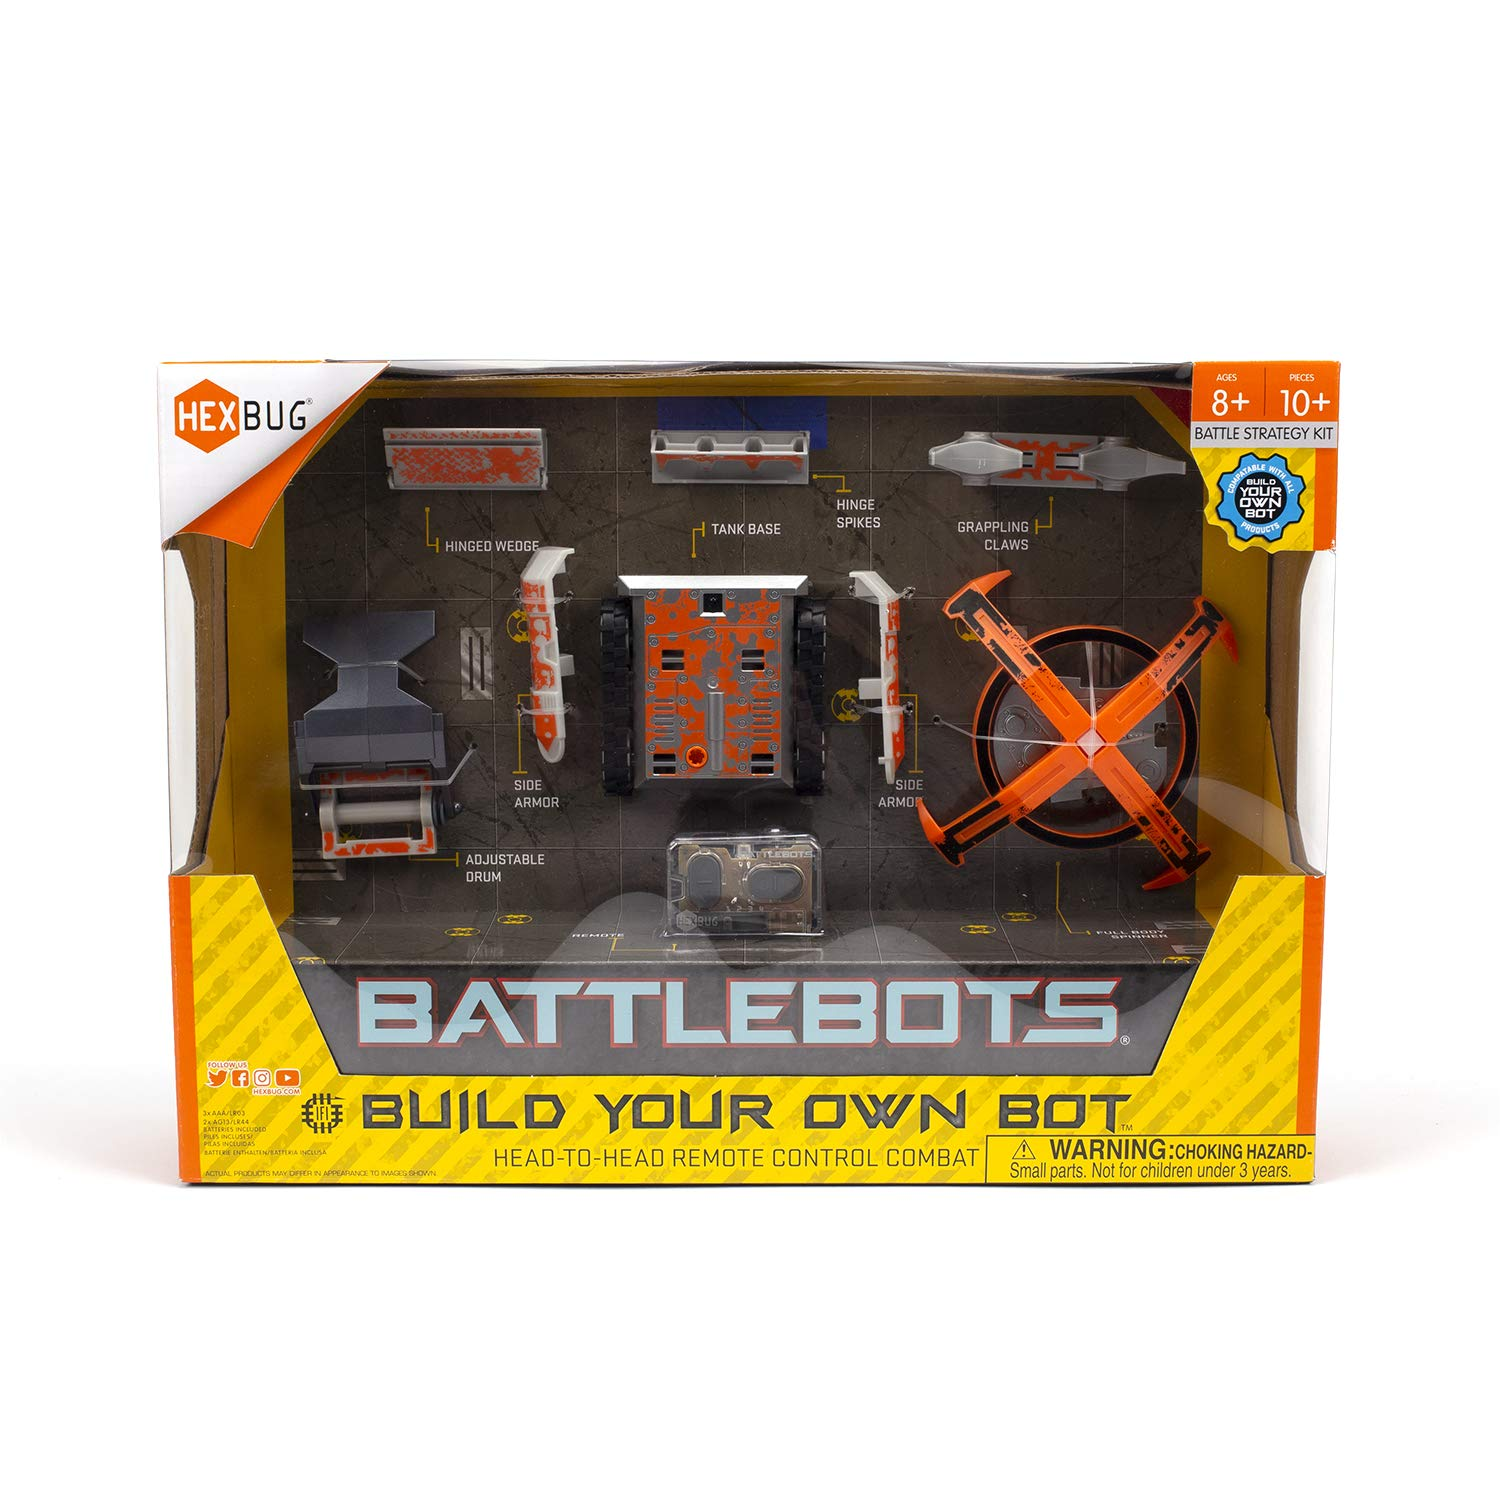 HEXBUG BattleBots Build Your Own Bot Tank Drive, Toys for Kids, Fun Battle Bot Hex Bugs by HEXBUG (Image #5)